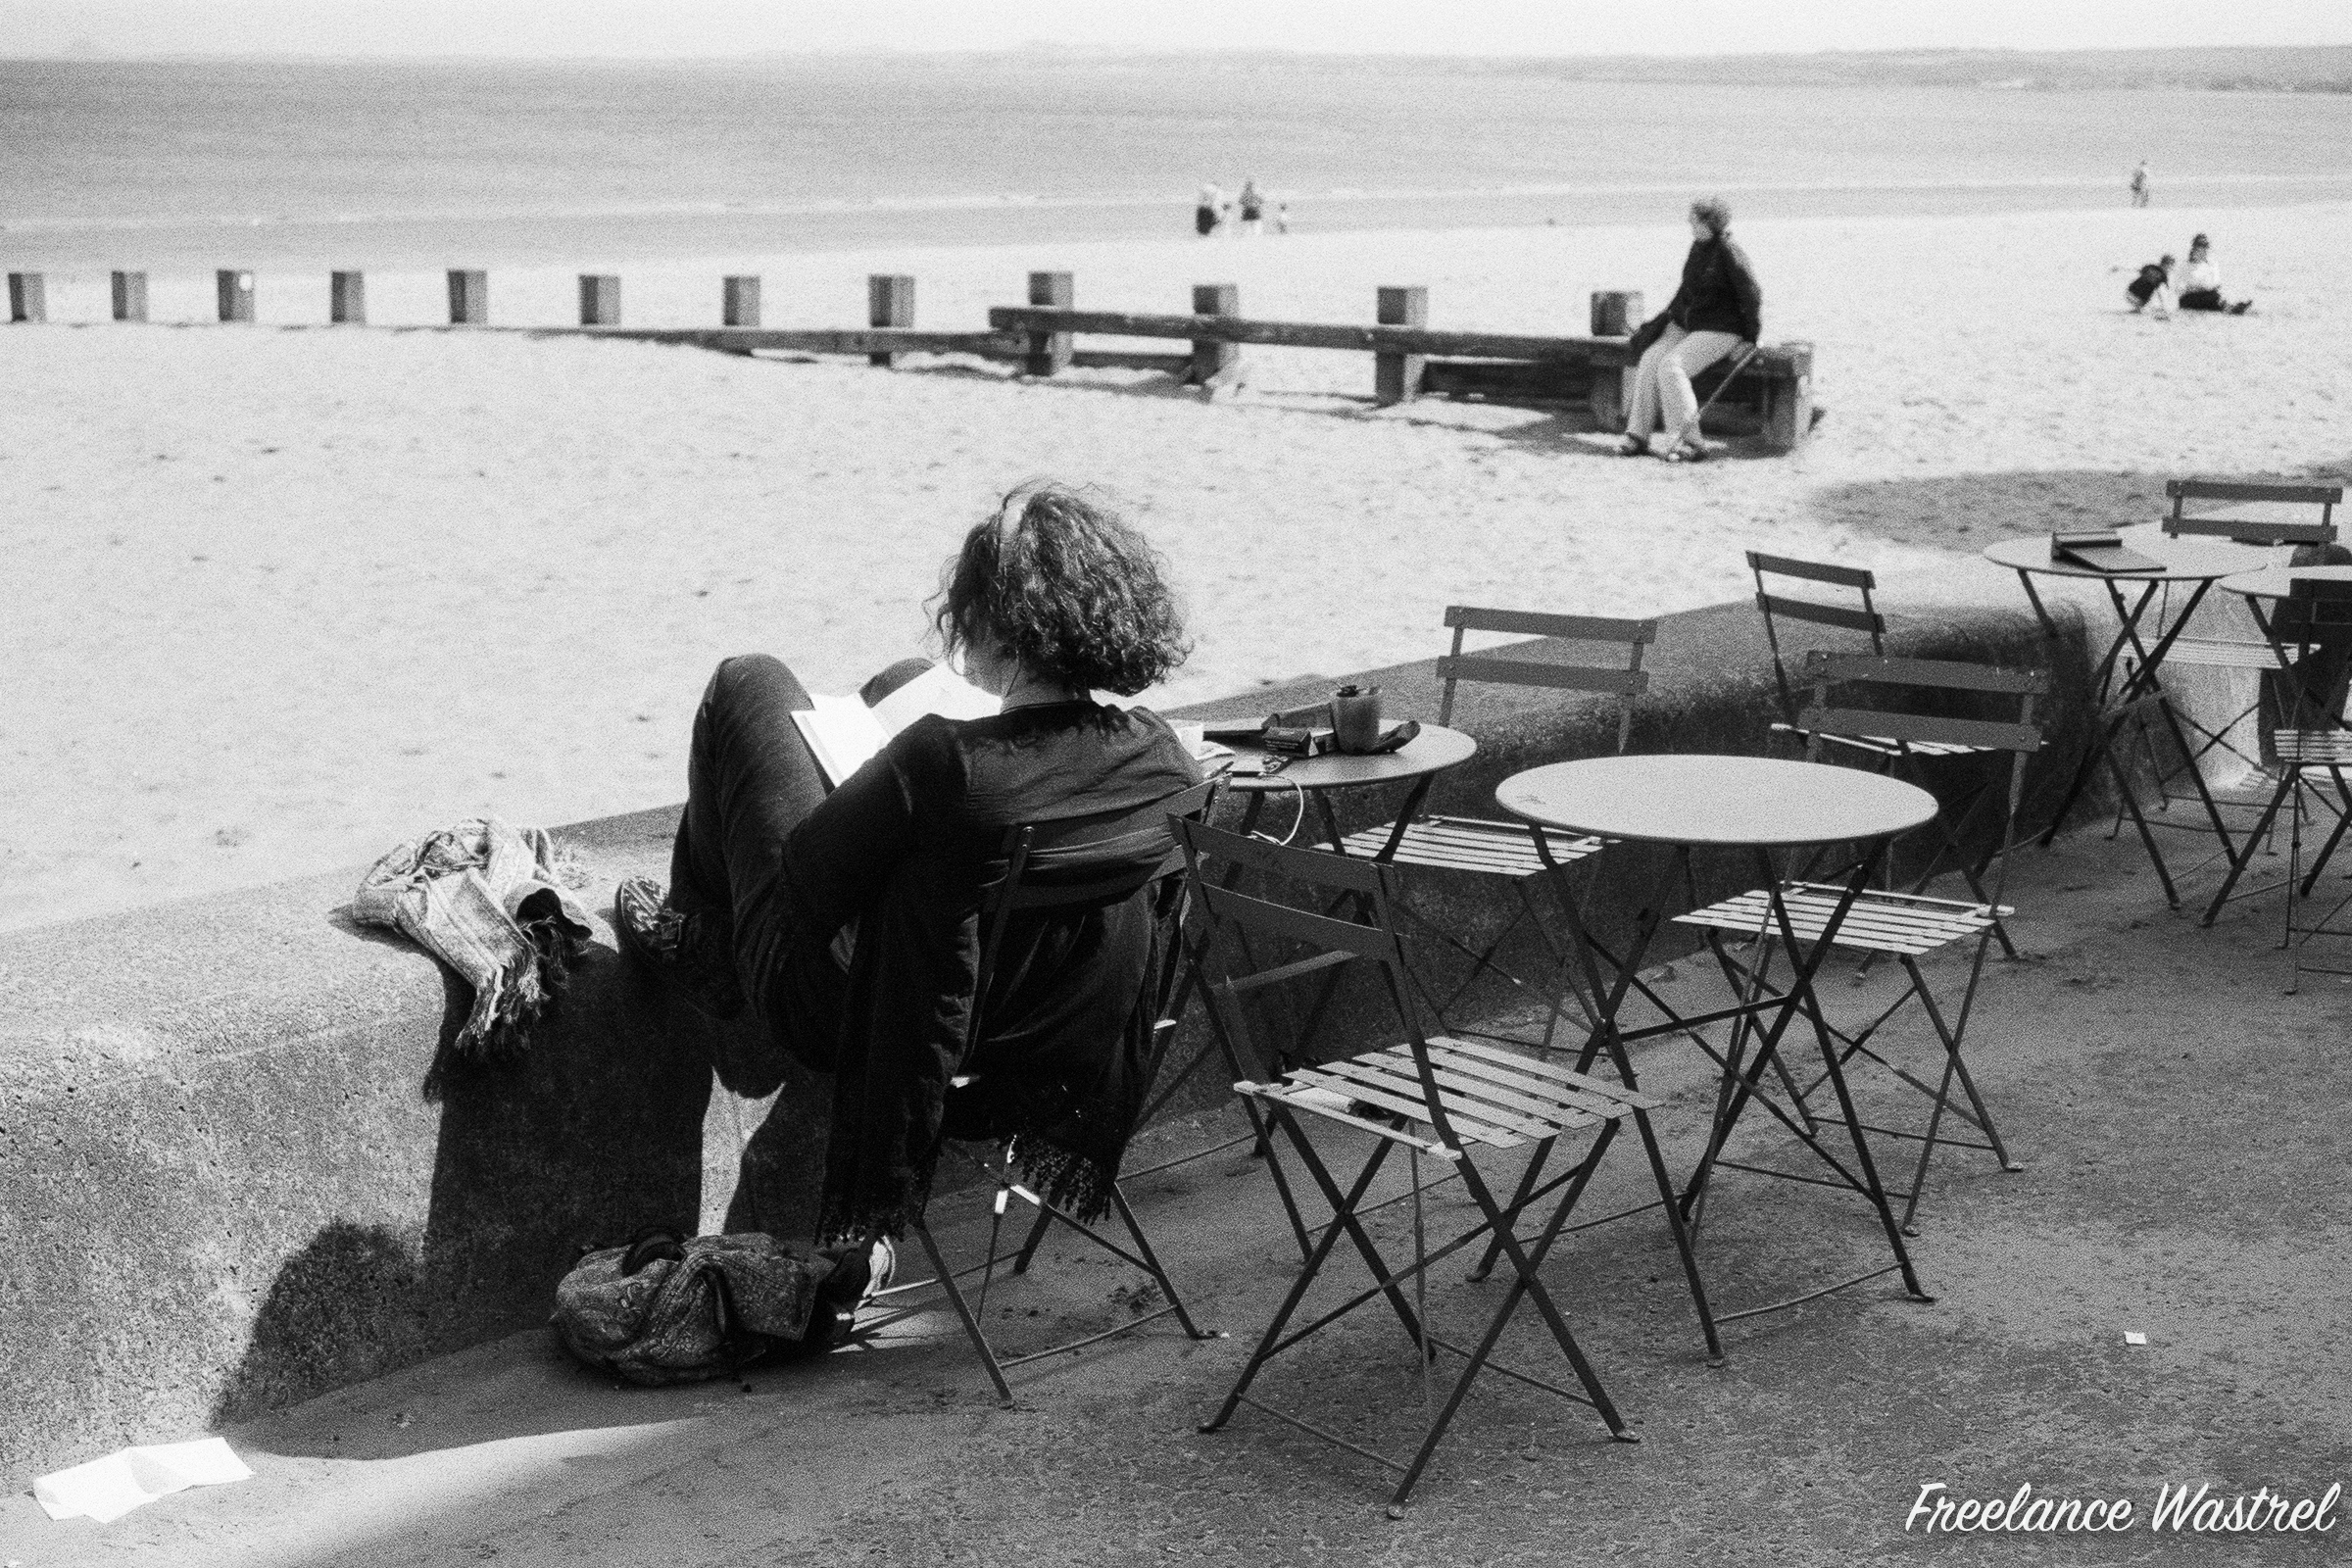 Reading at the beach, Portobello, August 2019